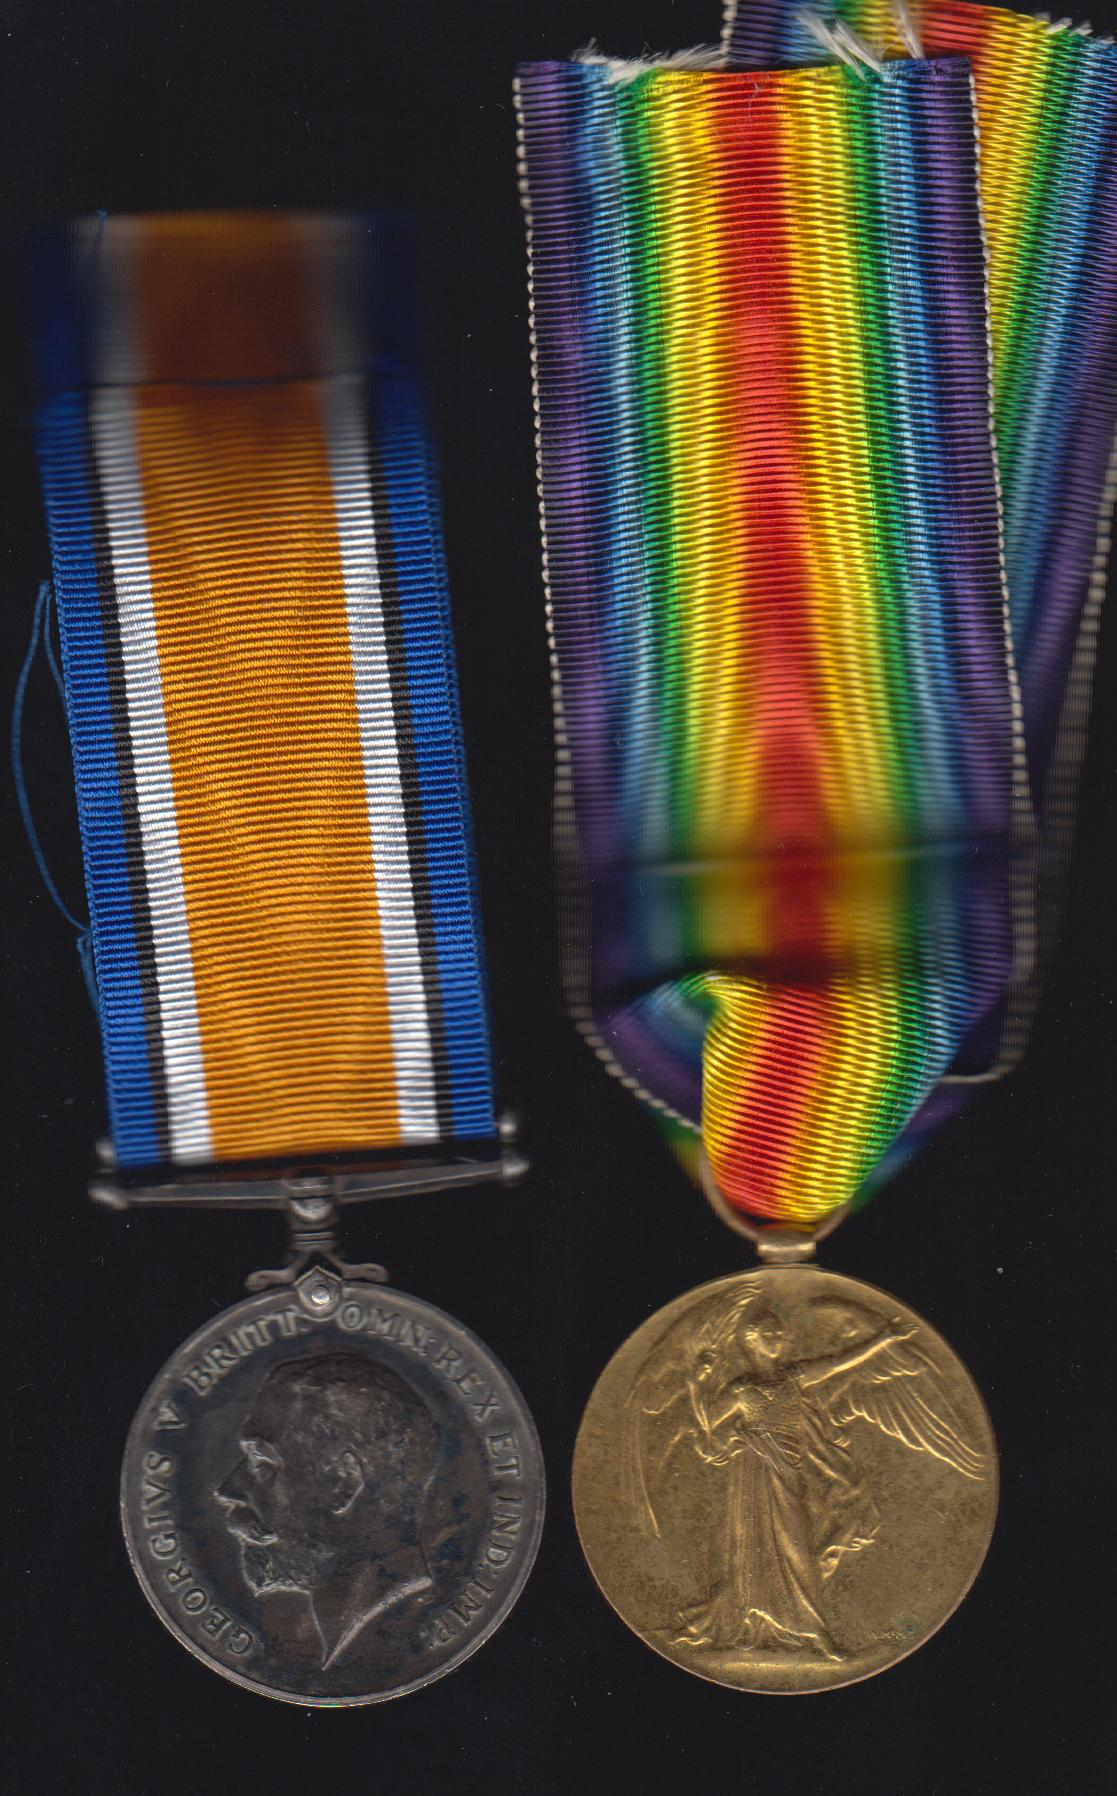 Medals– Medal Pair to #192865 Pte George Edward Manning, KIA 09 Apr 17, first day of the Battle of Vimy Ridge. Remember him.  Picture posted anonymously as should be.